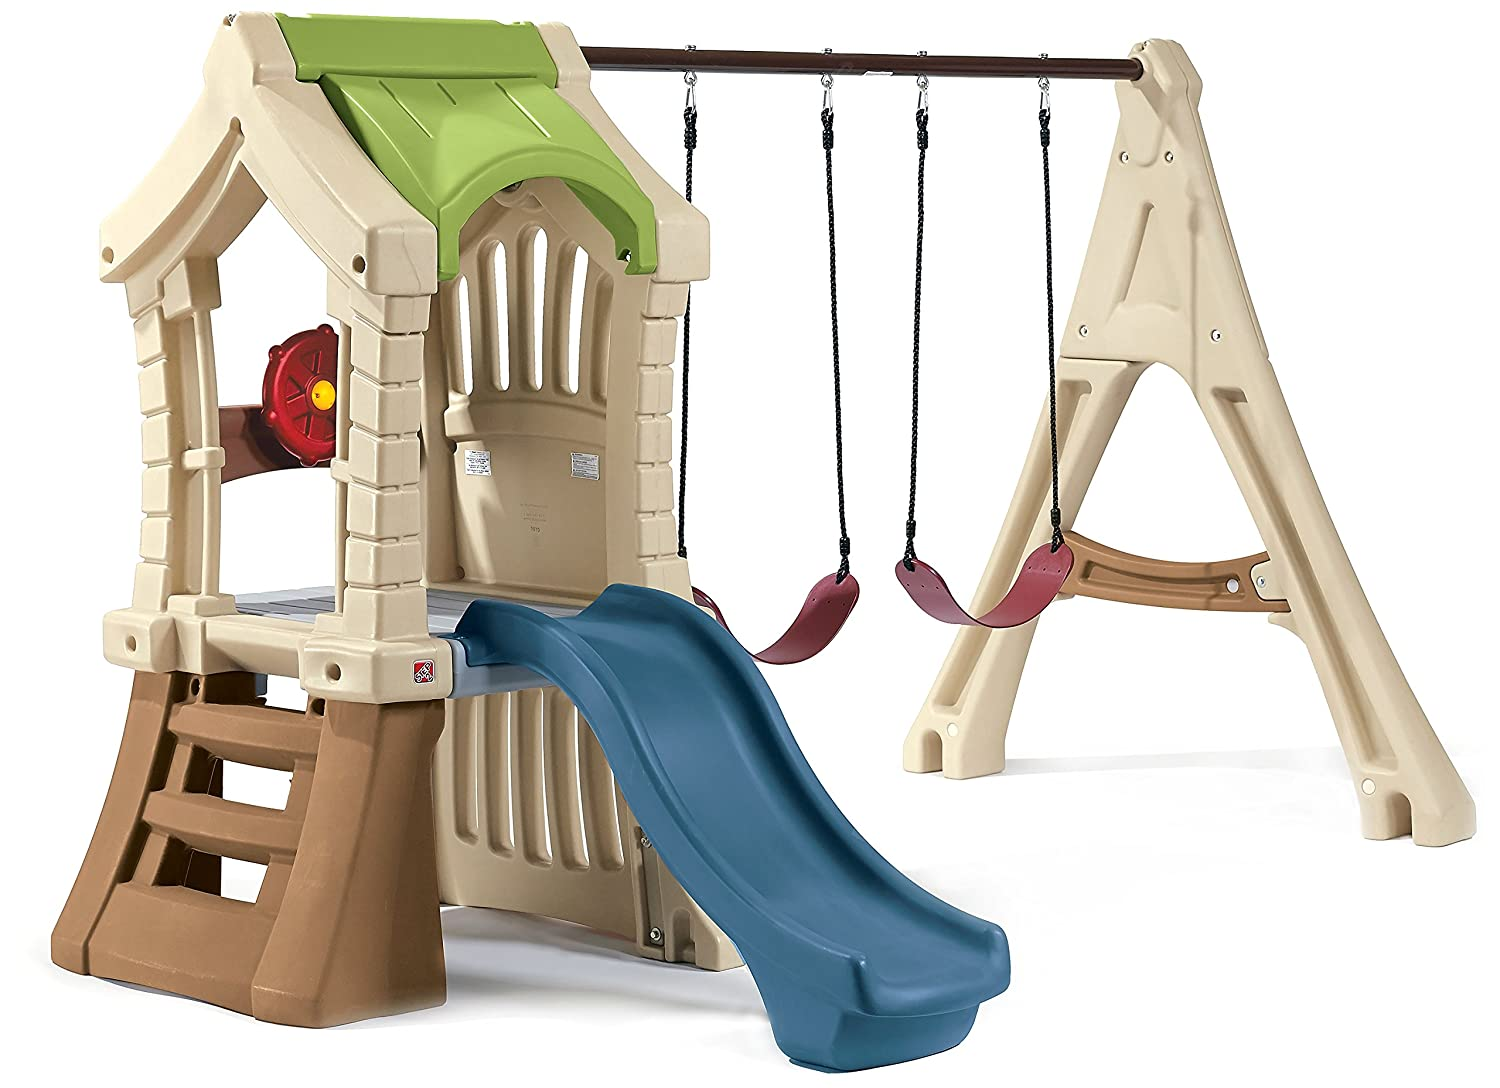 Amazon.com: Step2 Play Up Jungle Gym and Kids Swing Set: Toys & Games